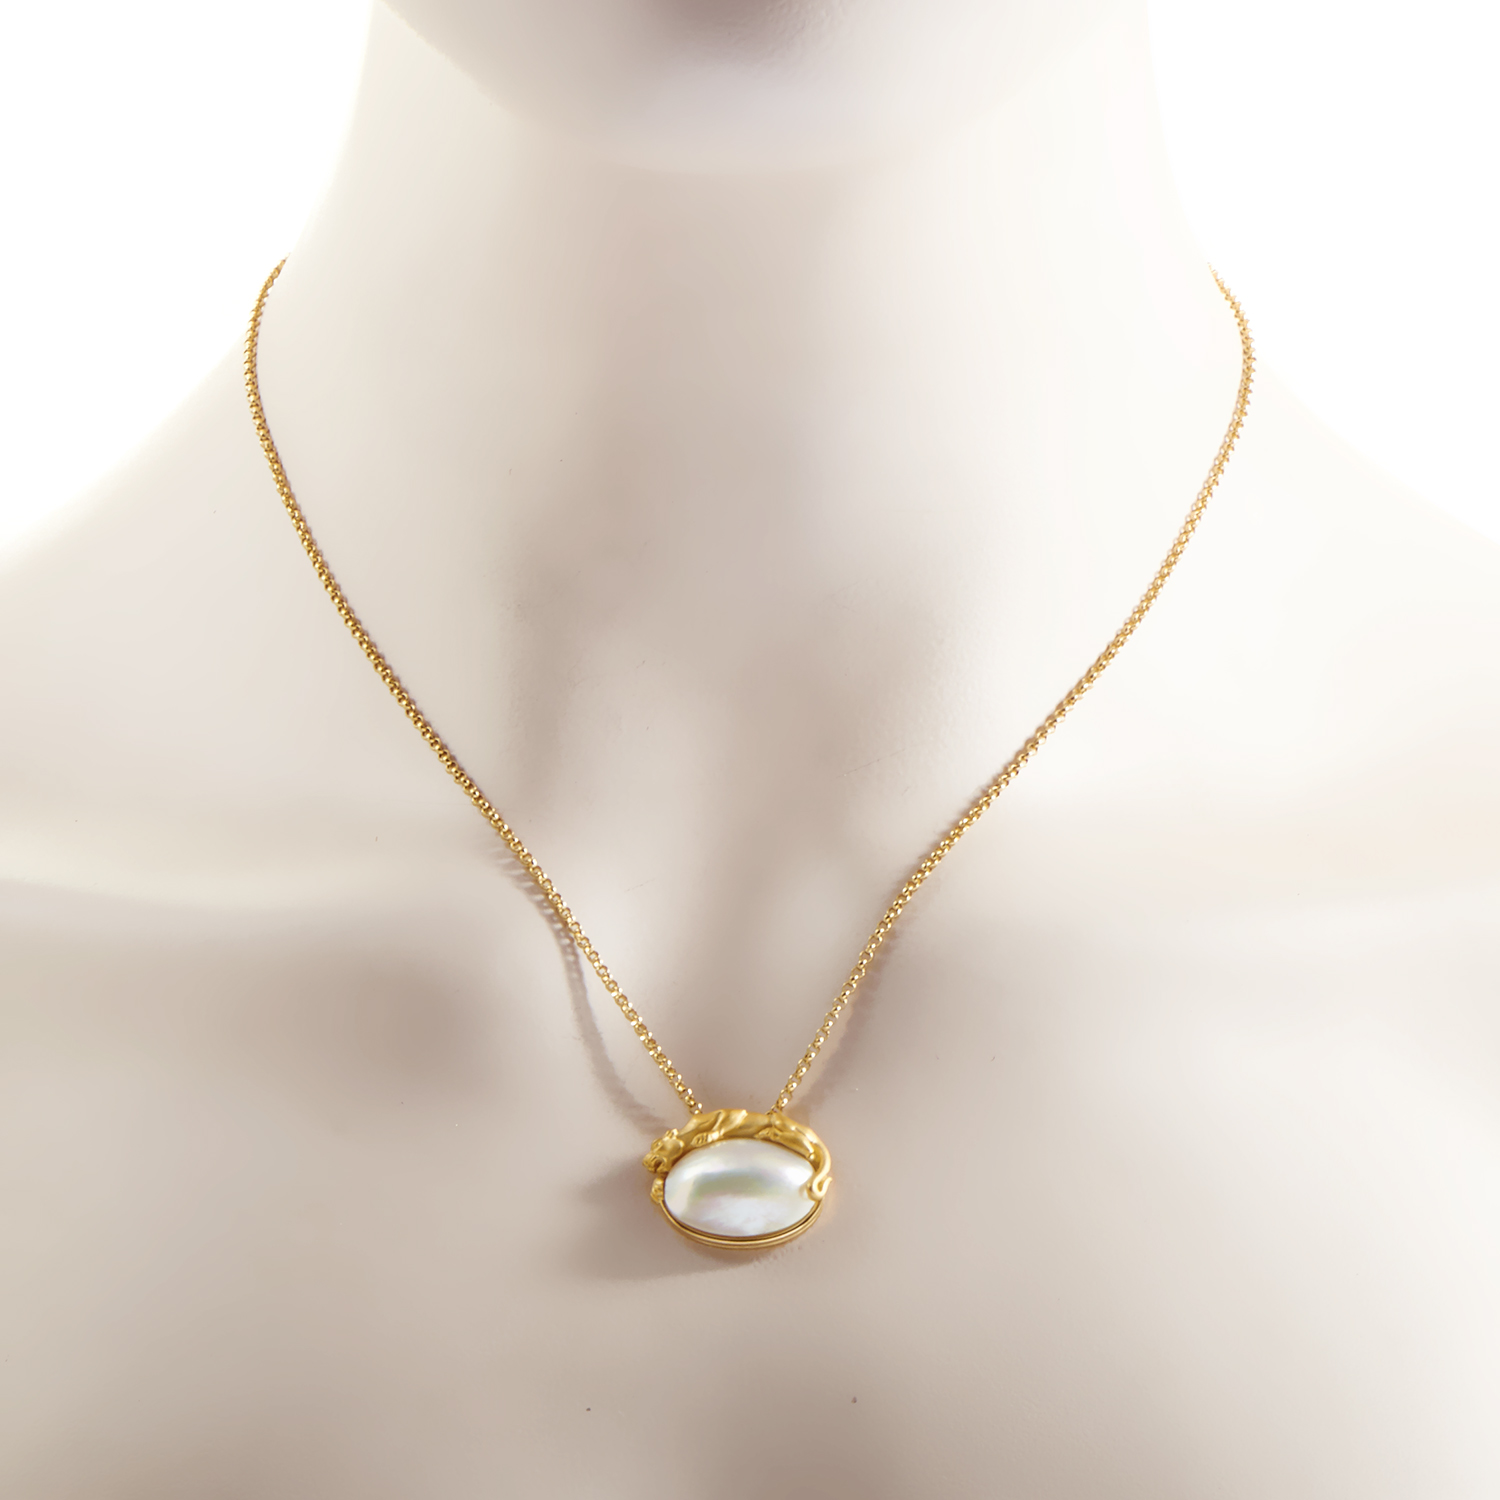 Mabe Pearl Necklace: Carrera Y Carrera Women's 18K Yellow Gold Mabe Pearl